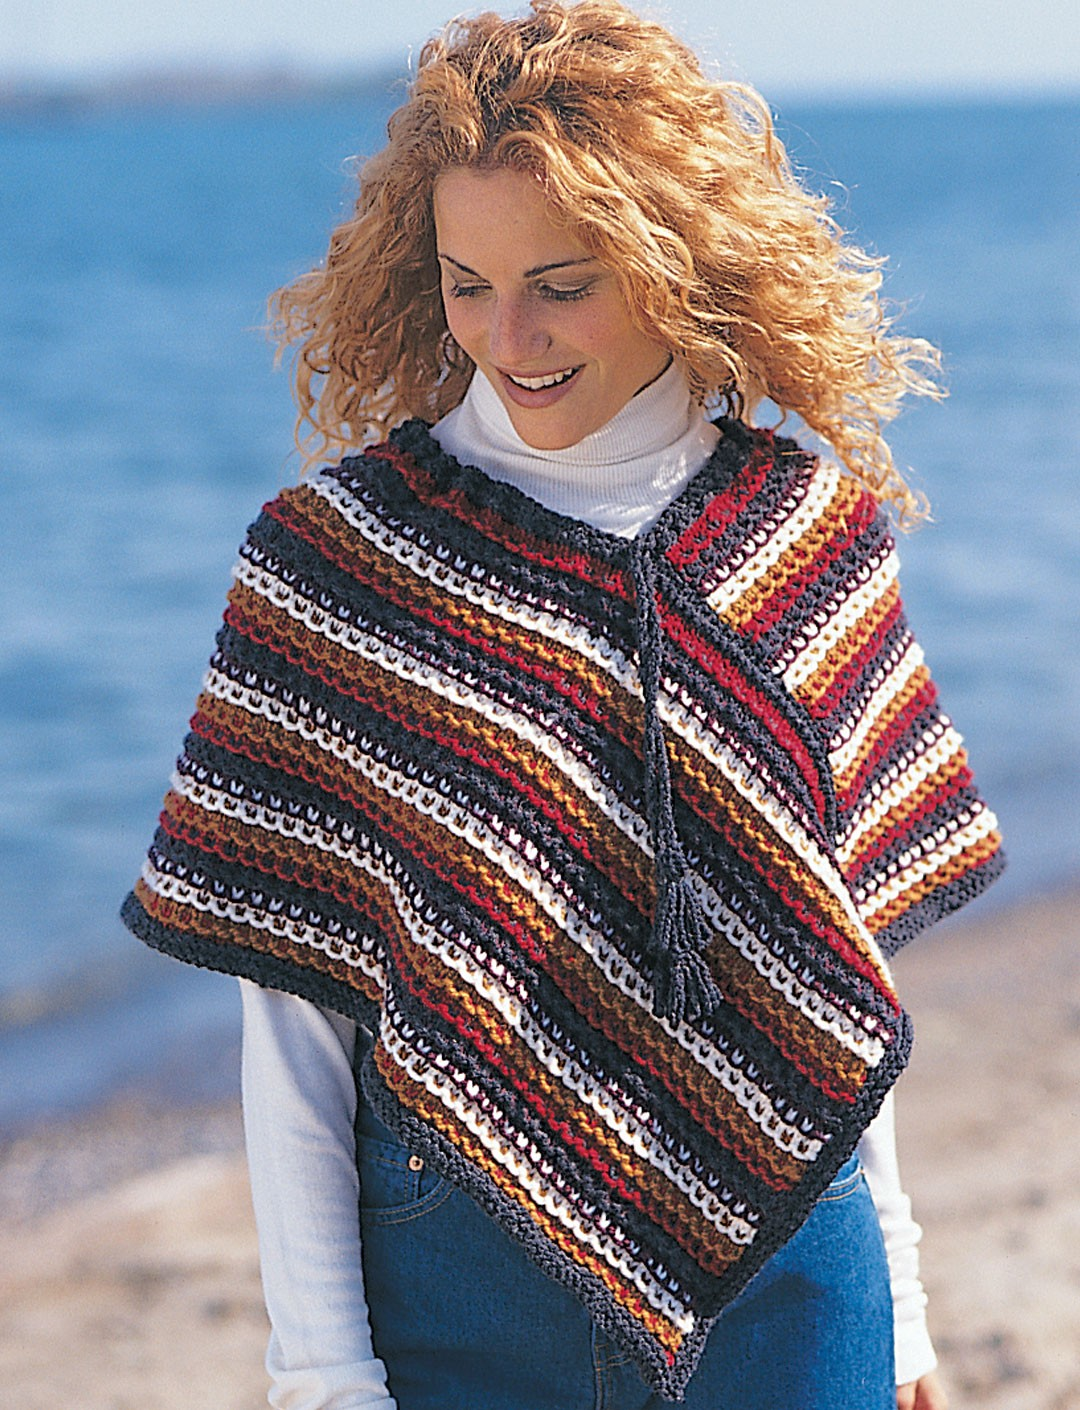 Easy Knitting Patterns For Beginners Poncho : Easy Rustic Stripes Poncho - Patterns Yarnspirations